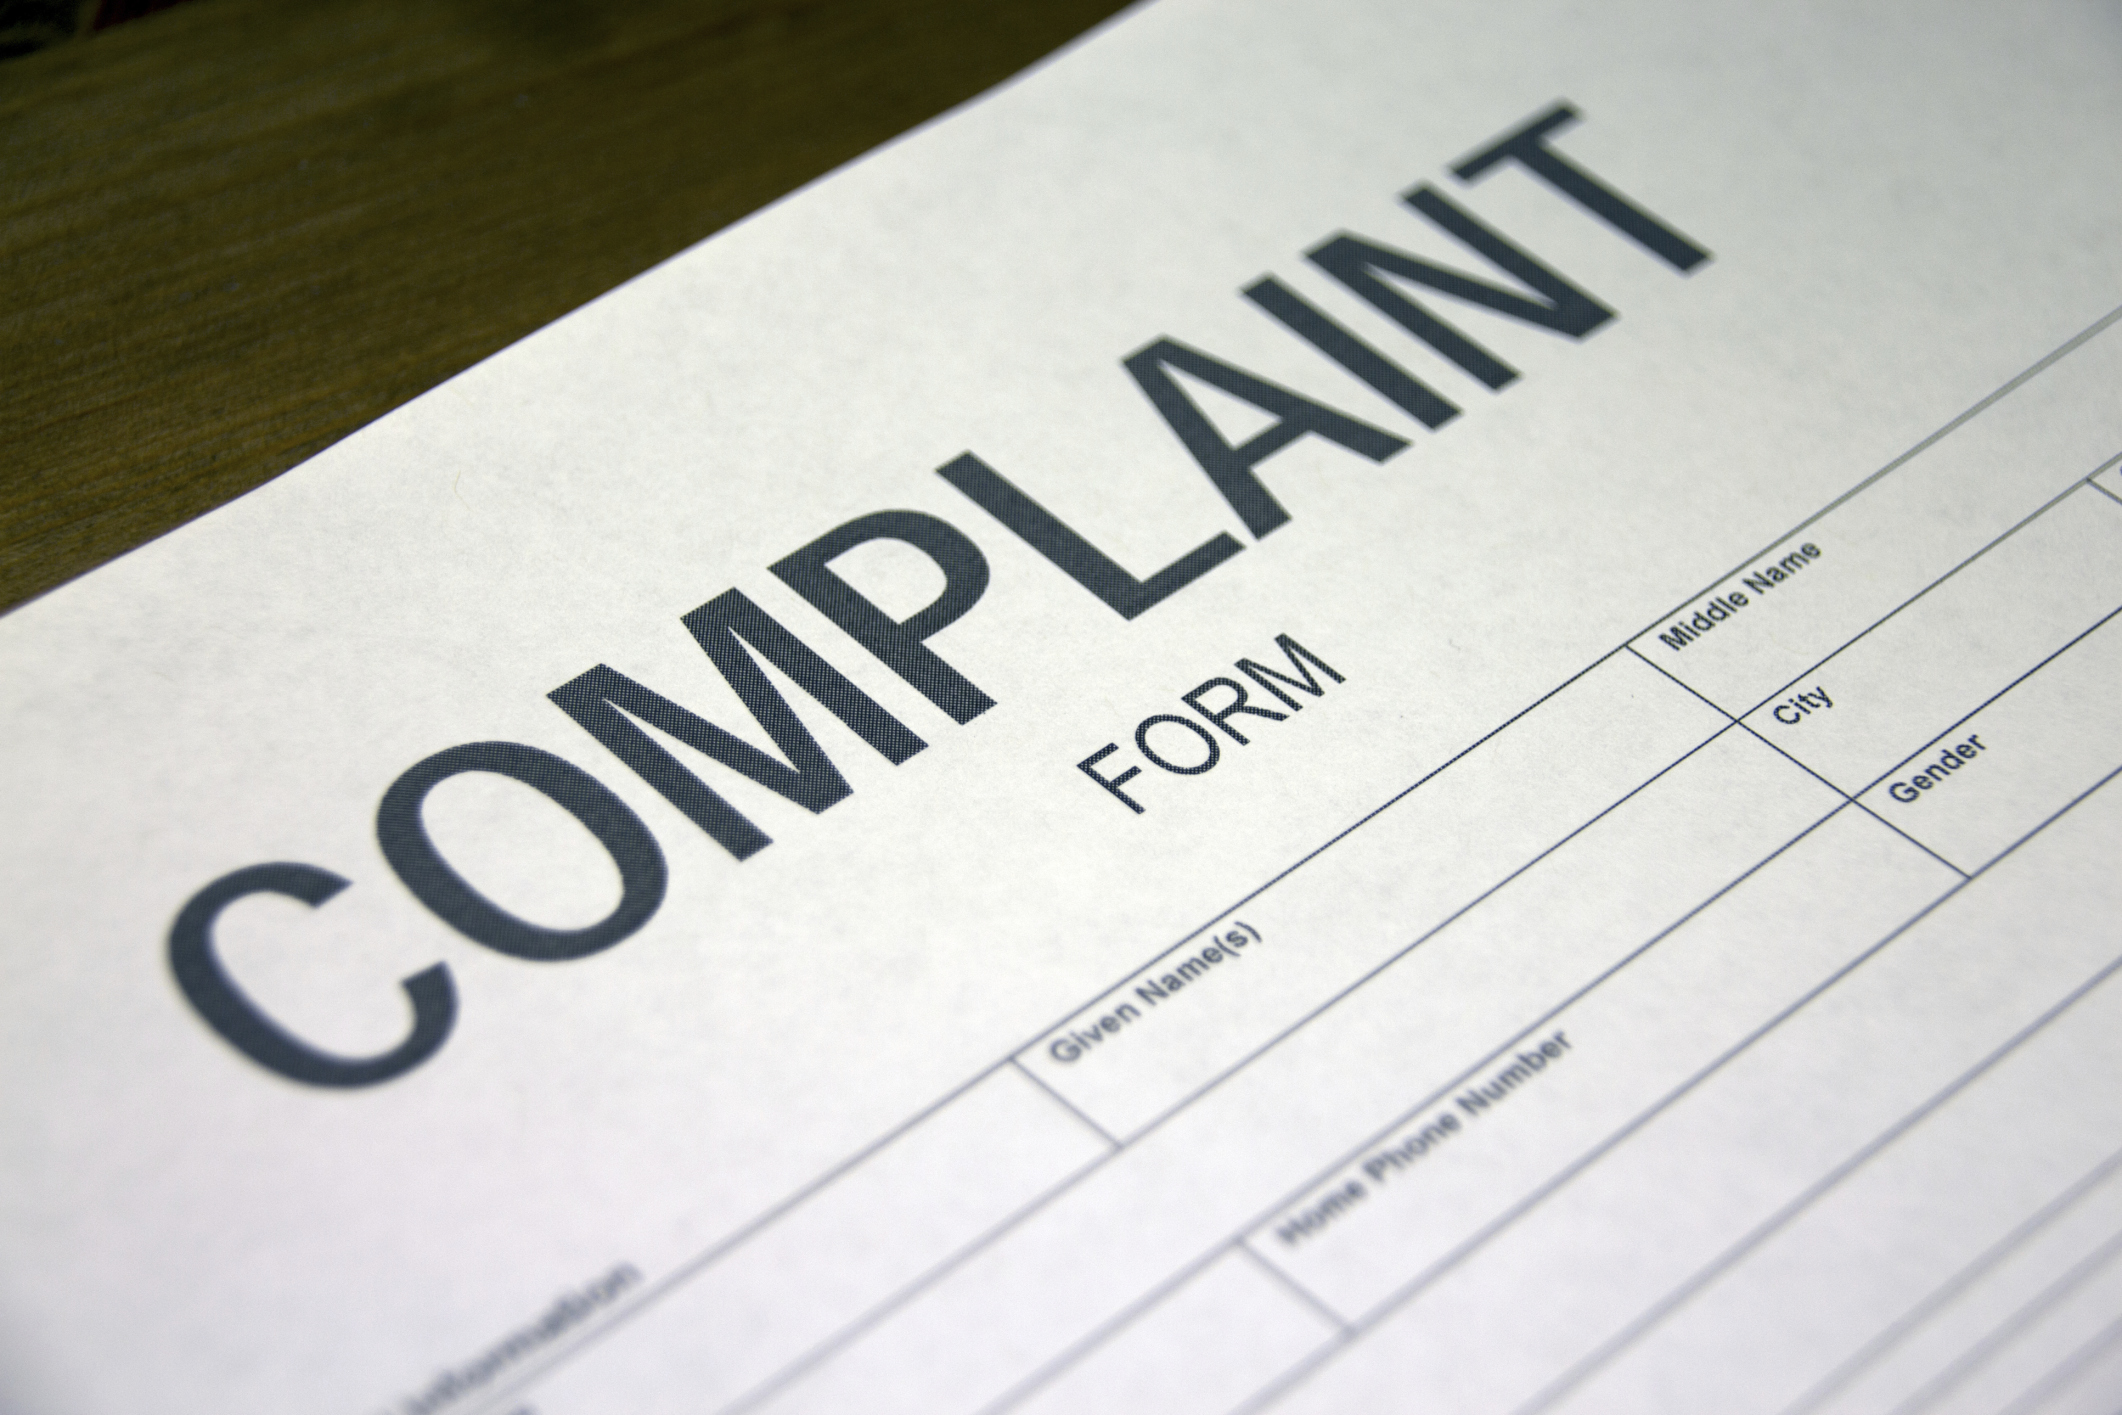 How to File an EEOC Complaint While Working for the Employer